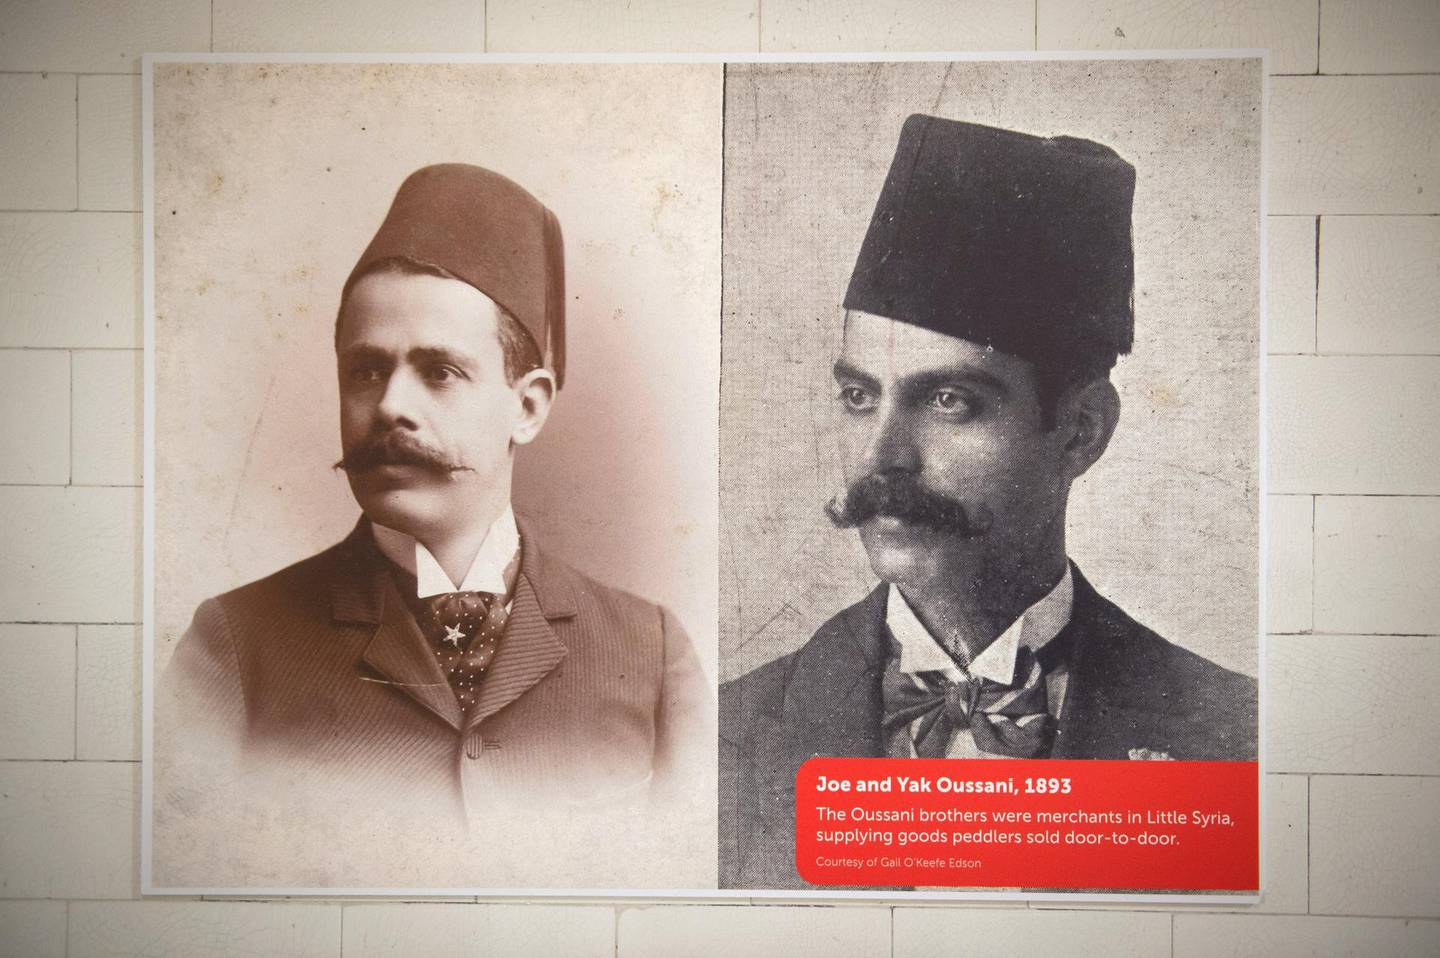 """Photographs of the Oussani brothers, Joe and Yak, on display at the exhibition, """"Little Syria, NY, An Immigrant Community's Life & Legacy"""" on view from October 1, 2016 - January 9, 2017 at the Ellis Island National Museum of Immigration, September 27, 2016, in New York. (Photo by Bryan R. Smith / AFP)"""